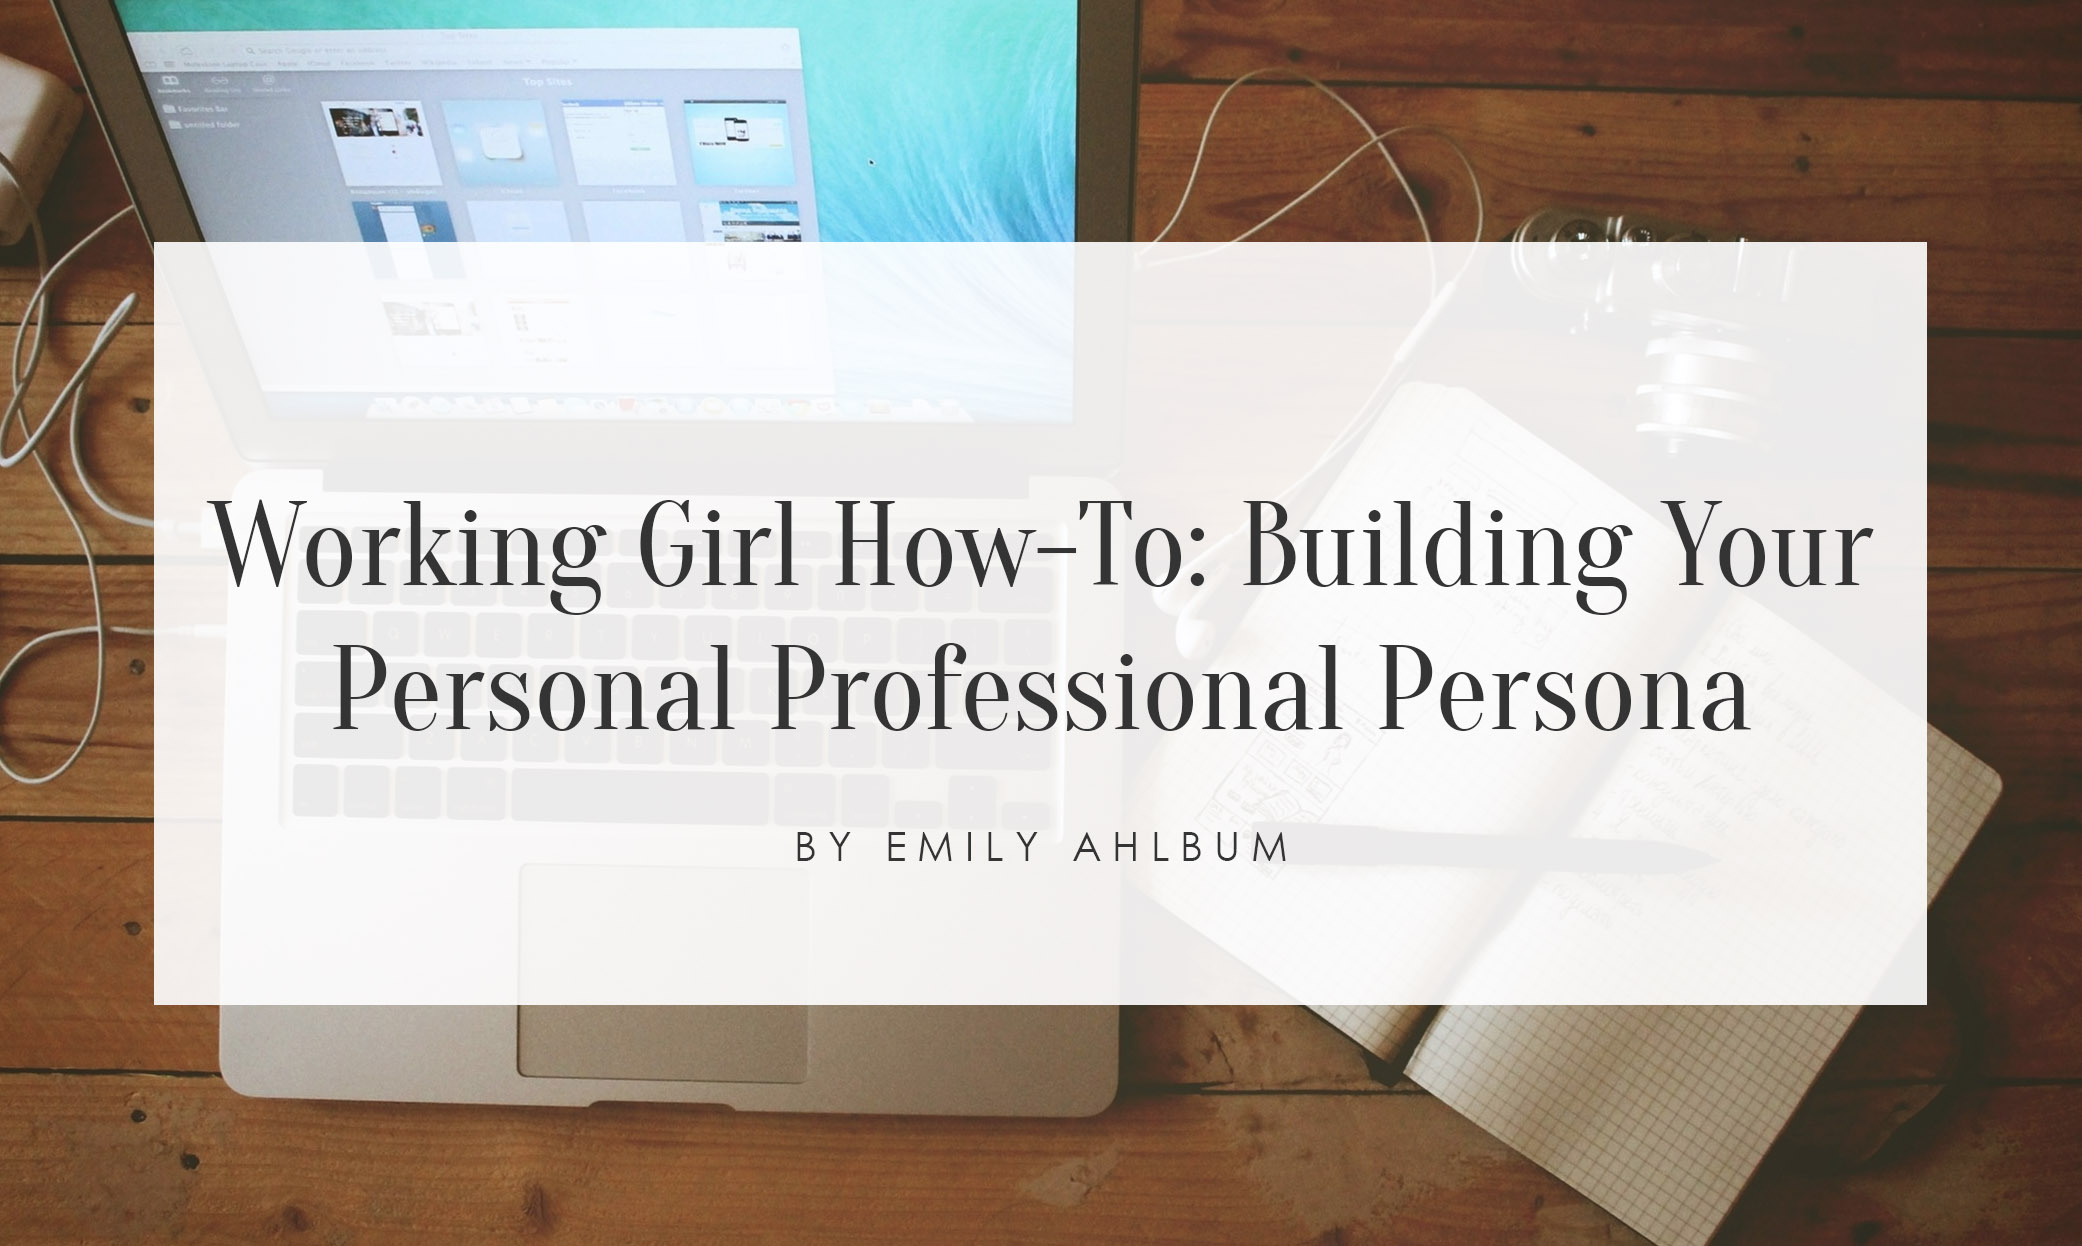 Working Girl How-To: Building Your Personal Professional Persona